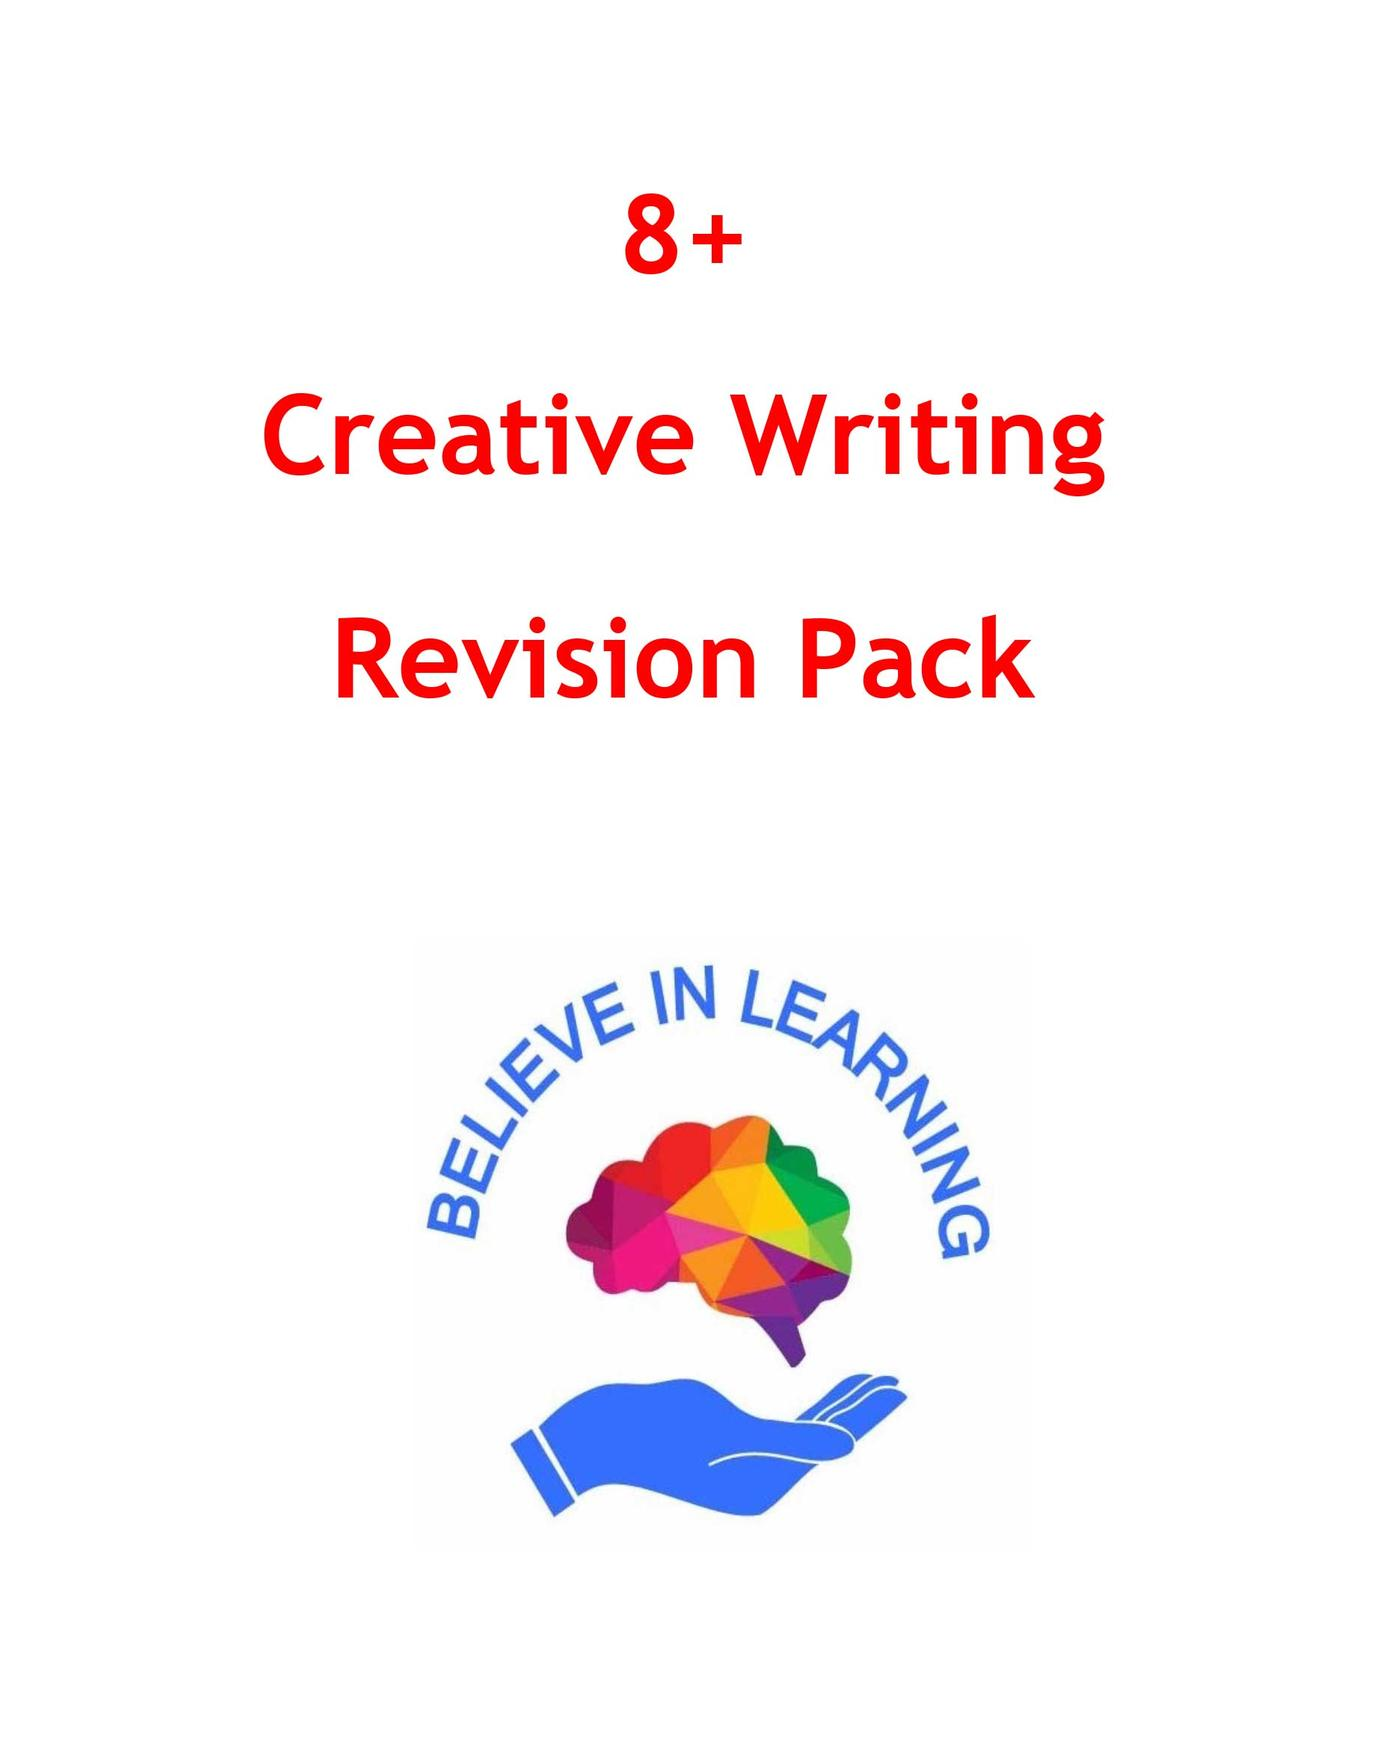 8+ Creative Writkng Revision Pack